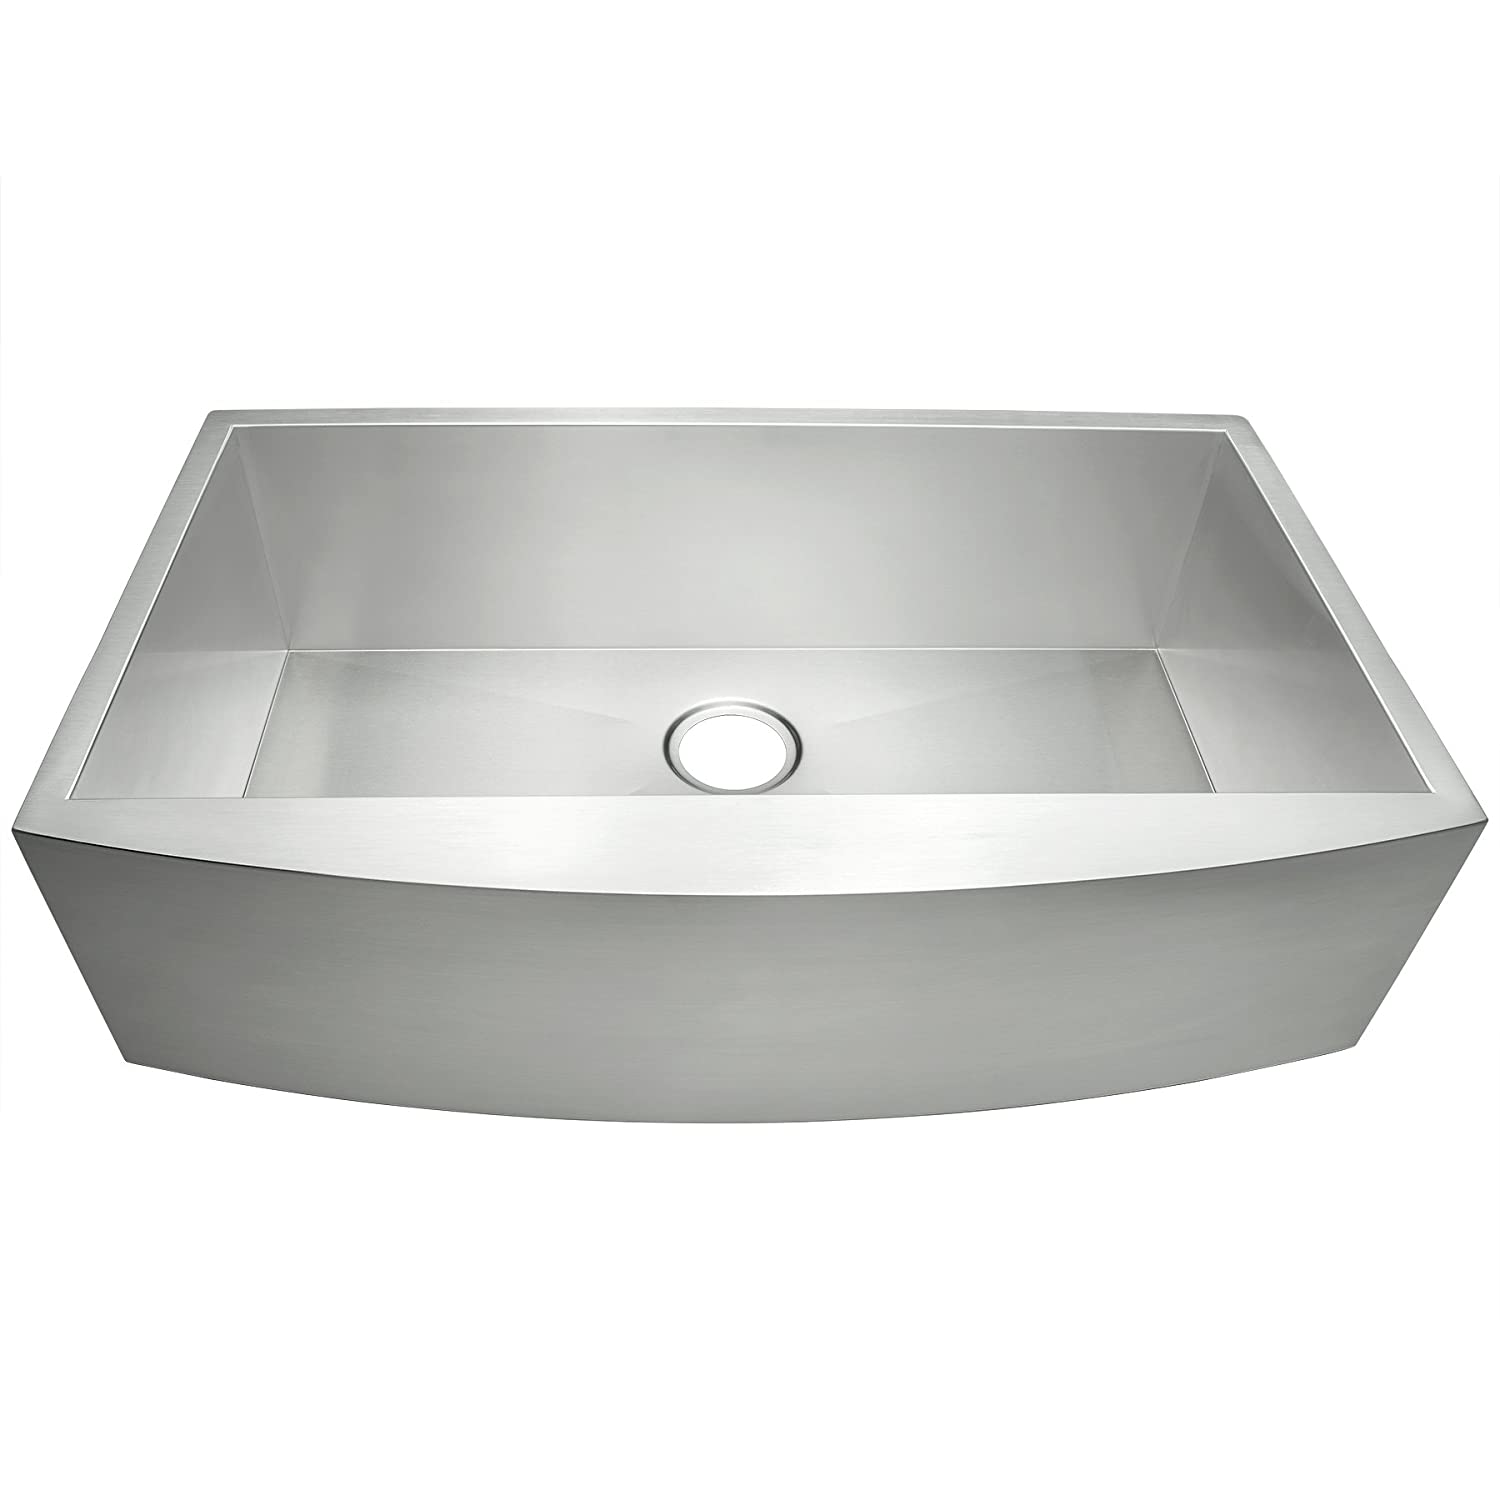 Akdy 33 X 20 X 9 Single Bowls 18 Gauge Undermount Apron Handmade Stainless Steel Kitchen Sink Amazon Com